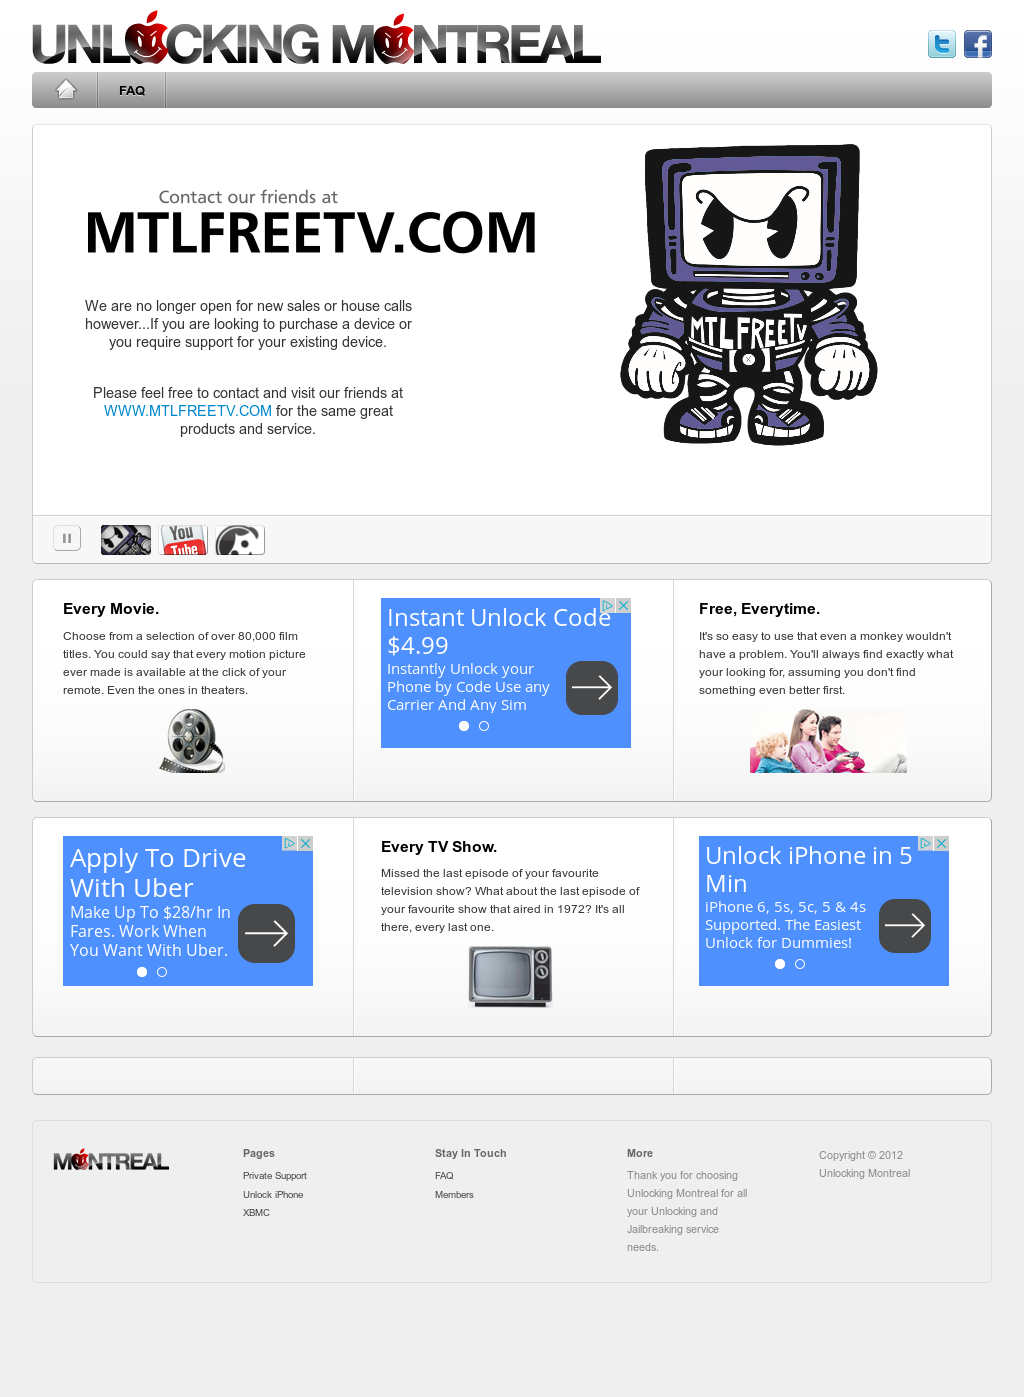 Montreal Free Tv - Mtlfreetv Competitors, Revenue and